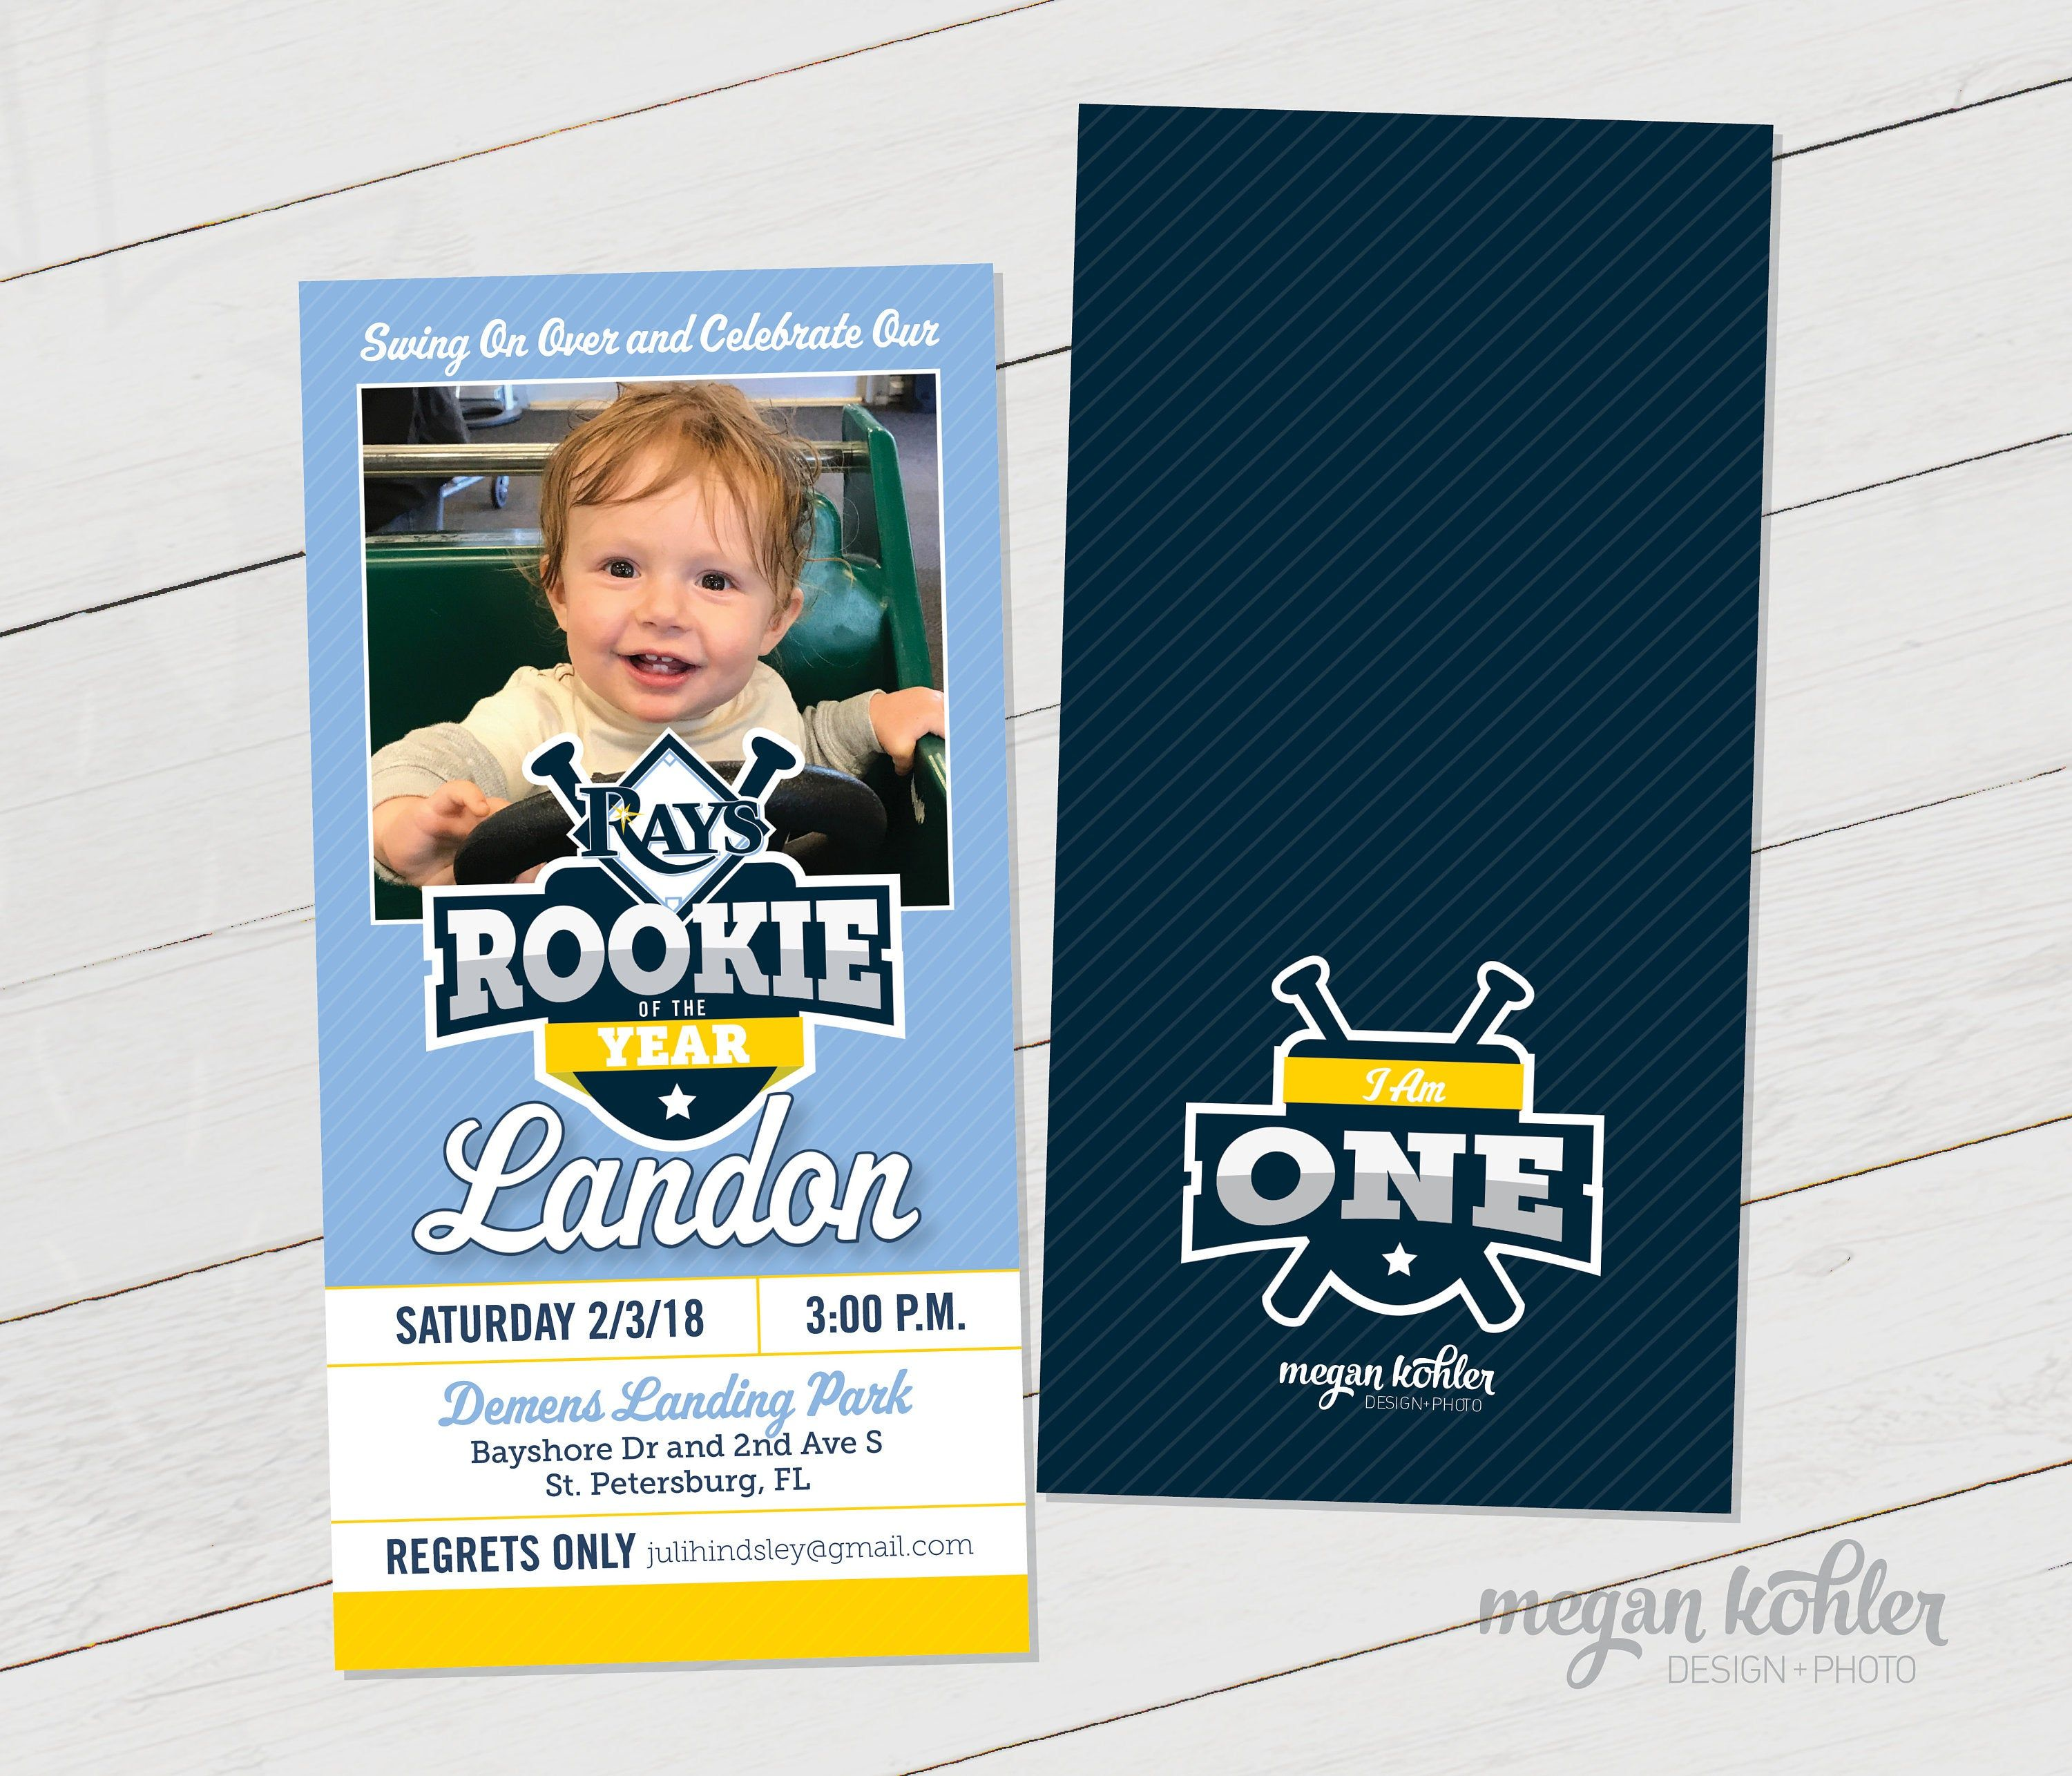 Rookie Of The Year Baseball Ticket Photo Invitation First Birthday Digital File Double Sided In 2021 Photo Invitations Baseball Ticket First Birthdays Rookie of the year poster